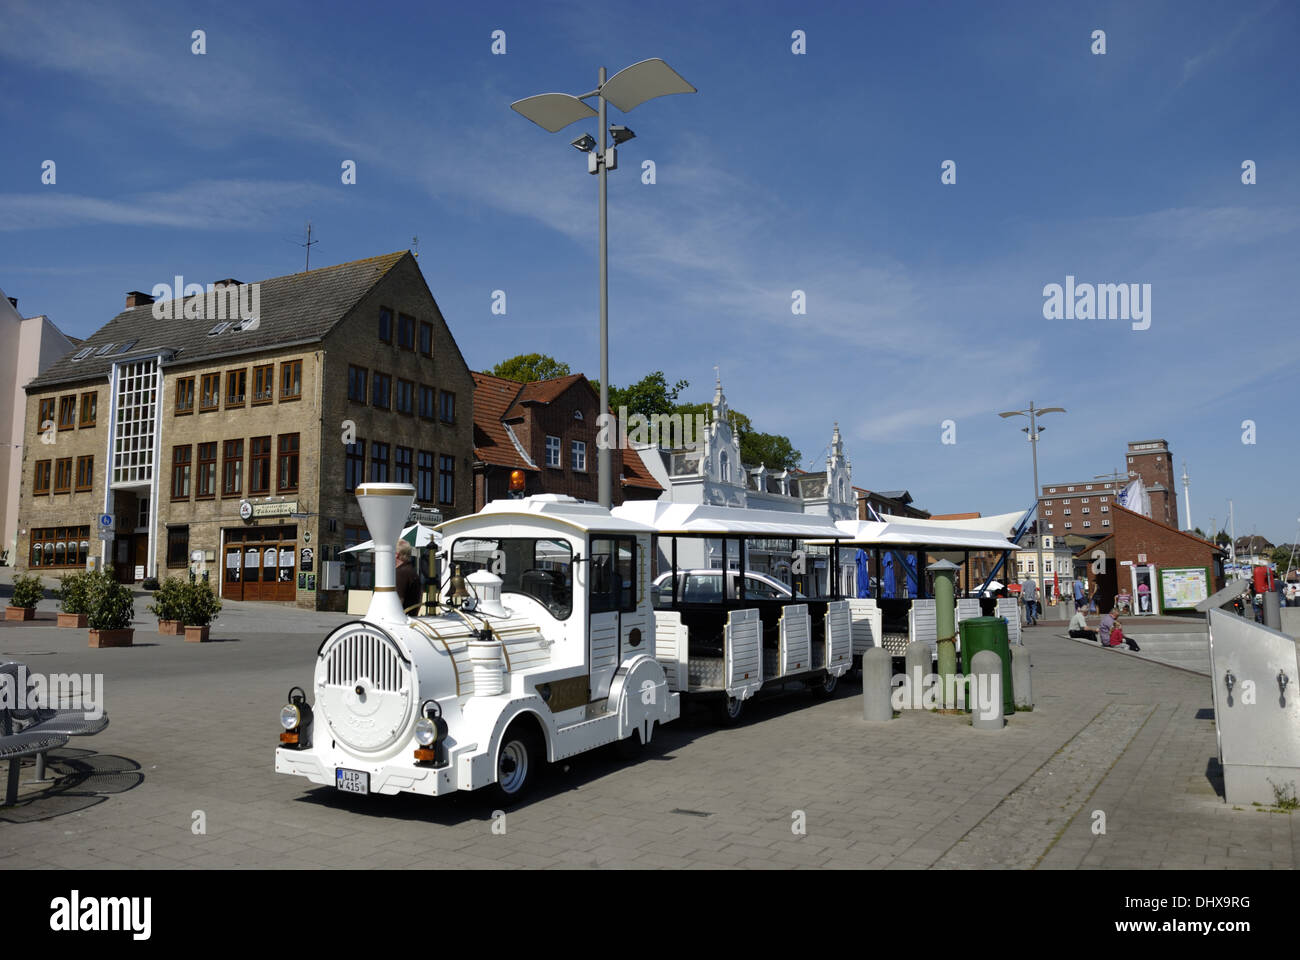 Small train in Kappeln - Stock Image